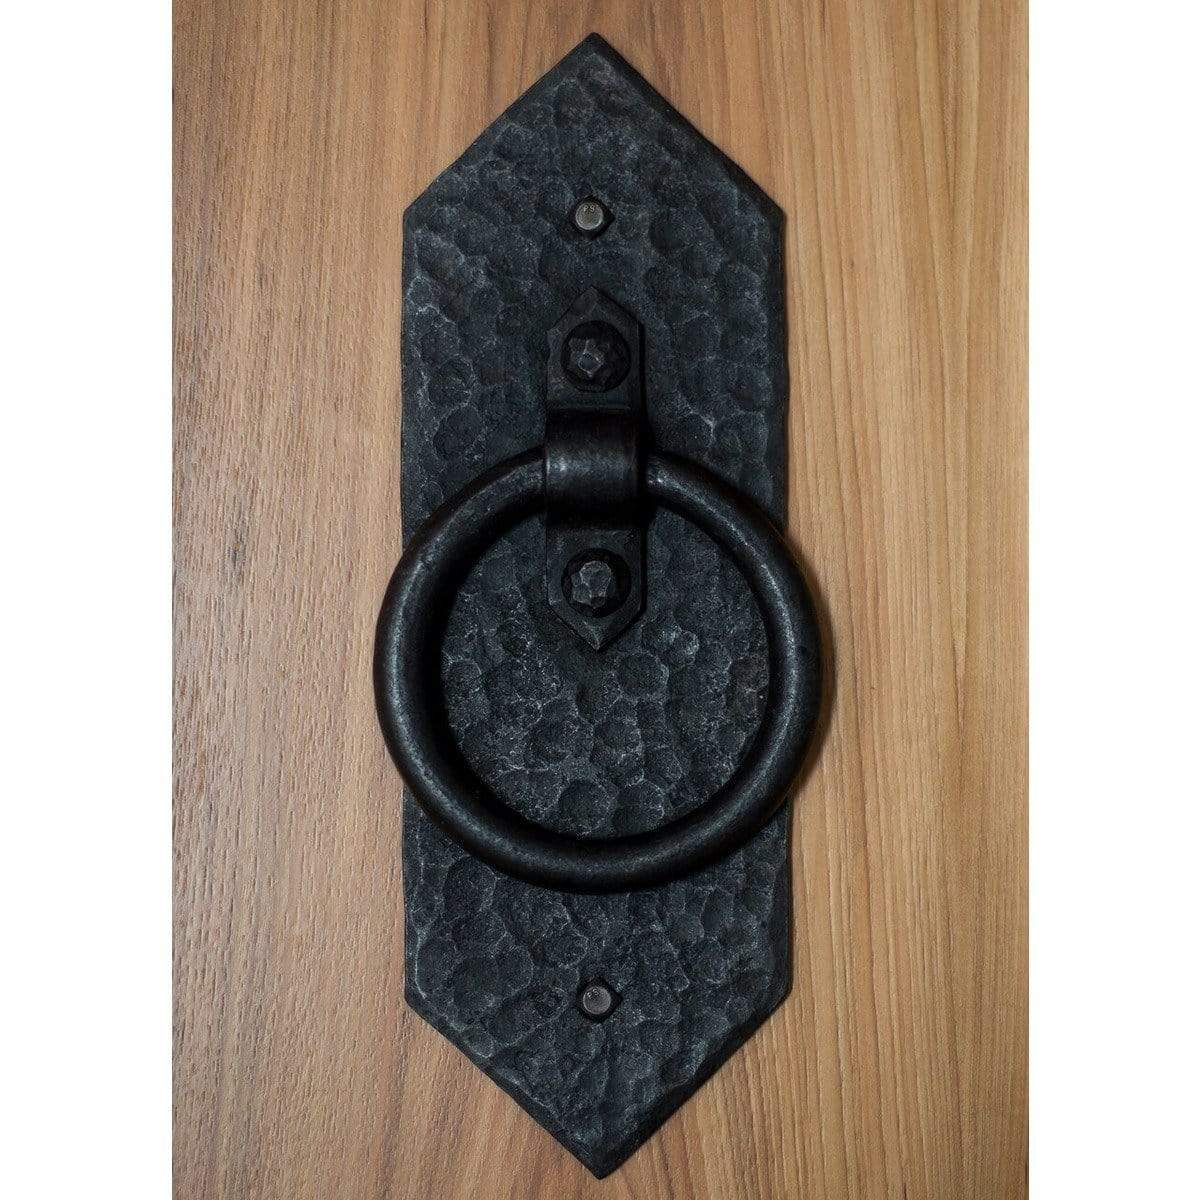 Hand Forged Diamond Rustic Ring Door Pull - Sliding Barn Door Hardware by RealCraft